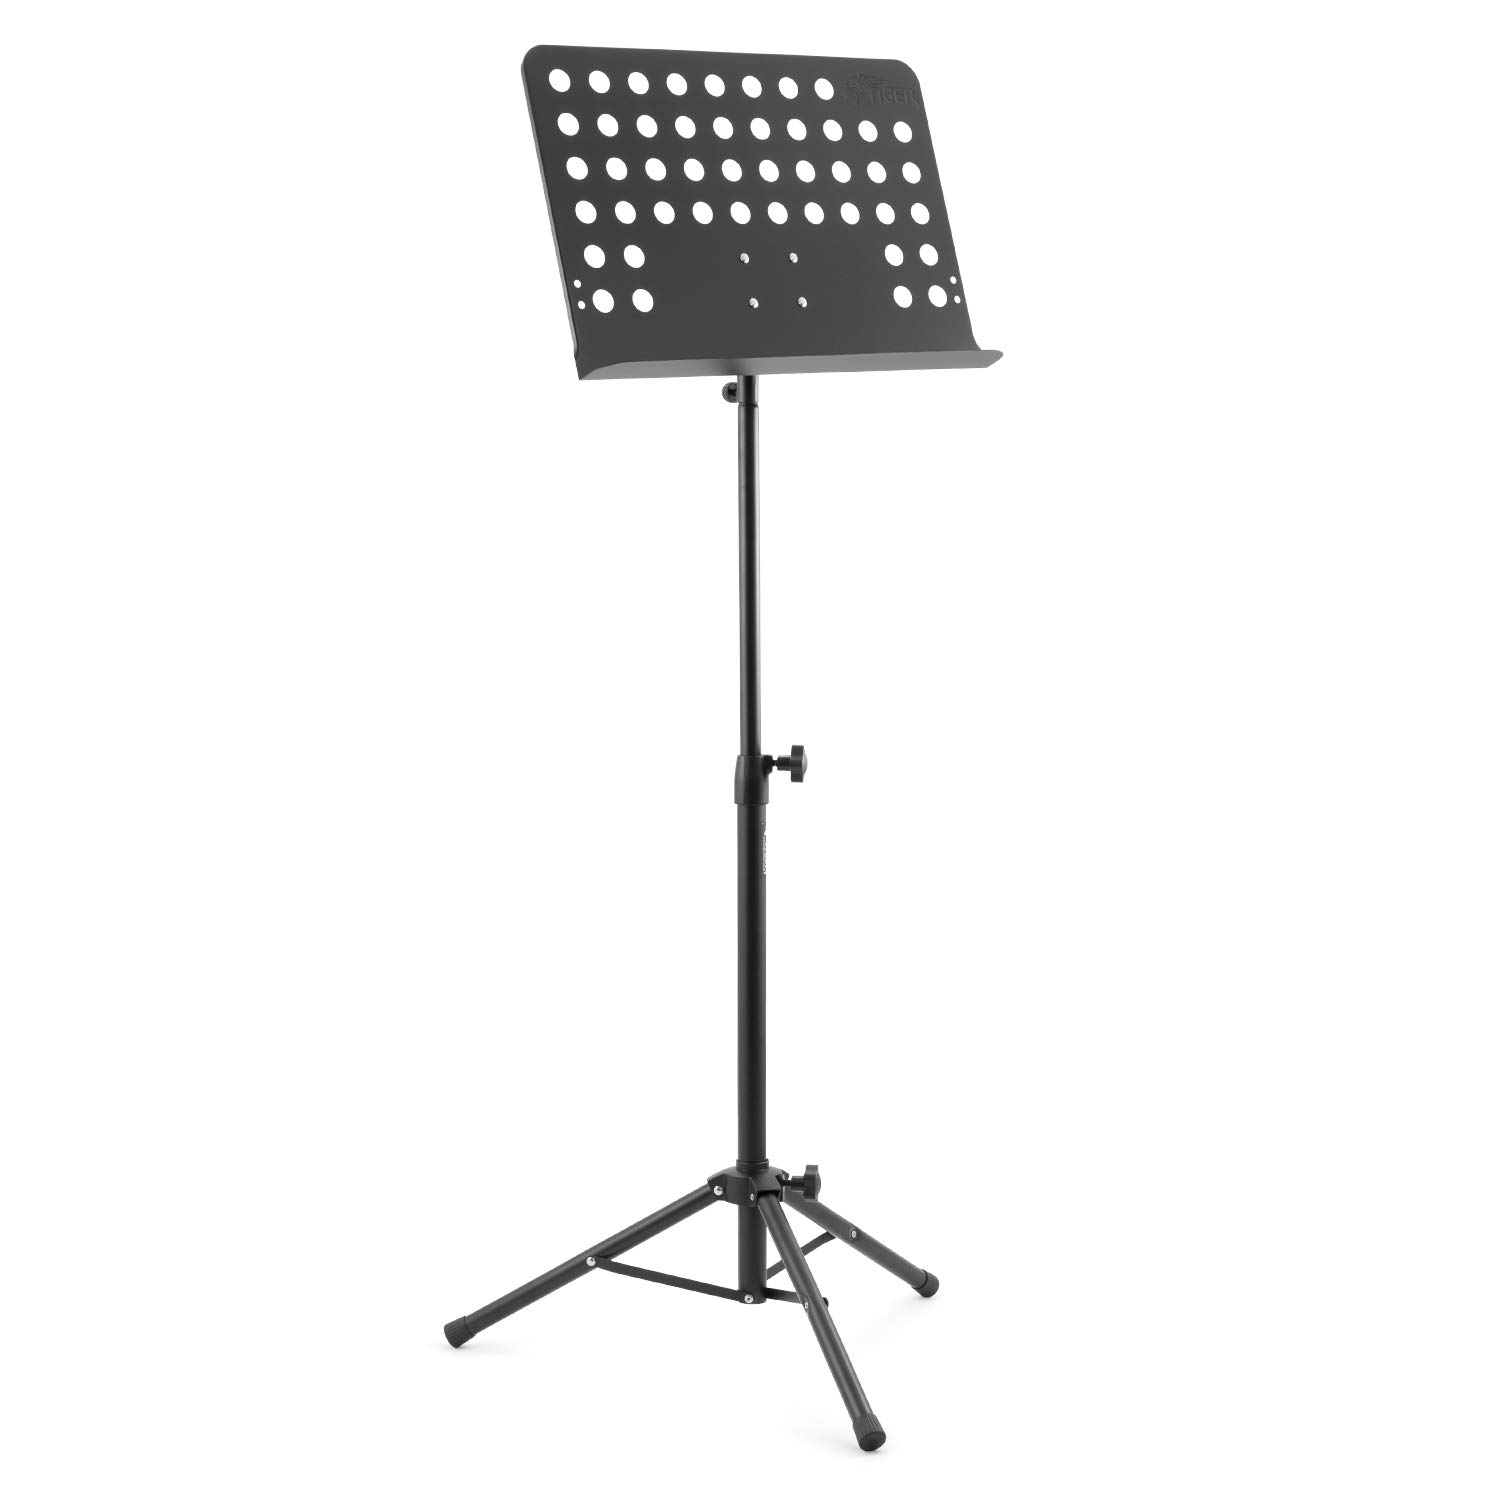 35a265c3601 Tiger Orchestral Music Stand - Fully Adjustable Sheet Music Stand in Black